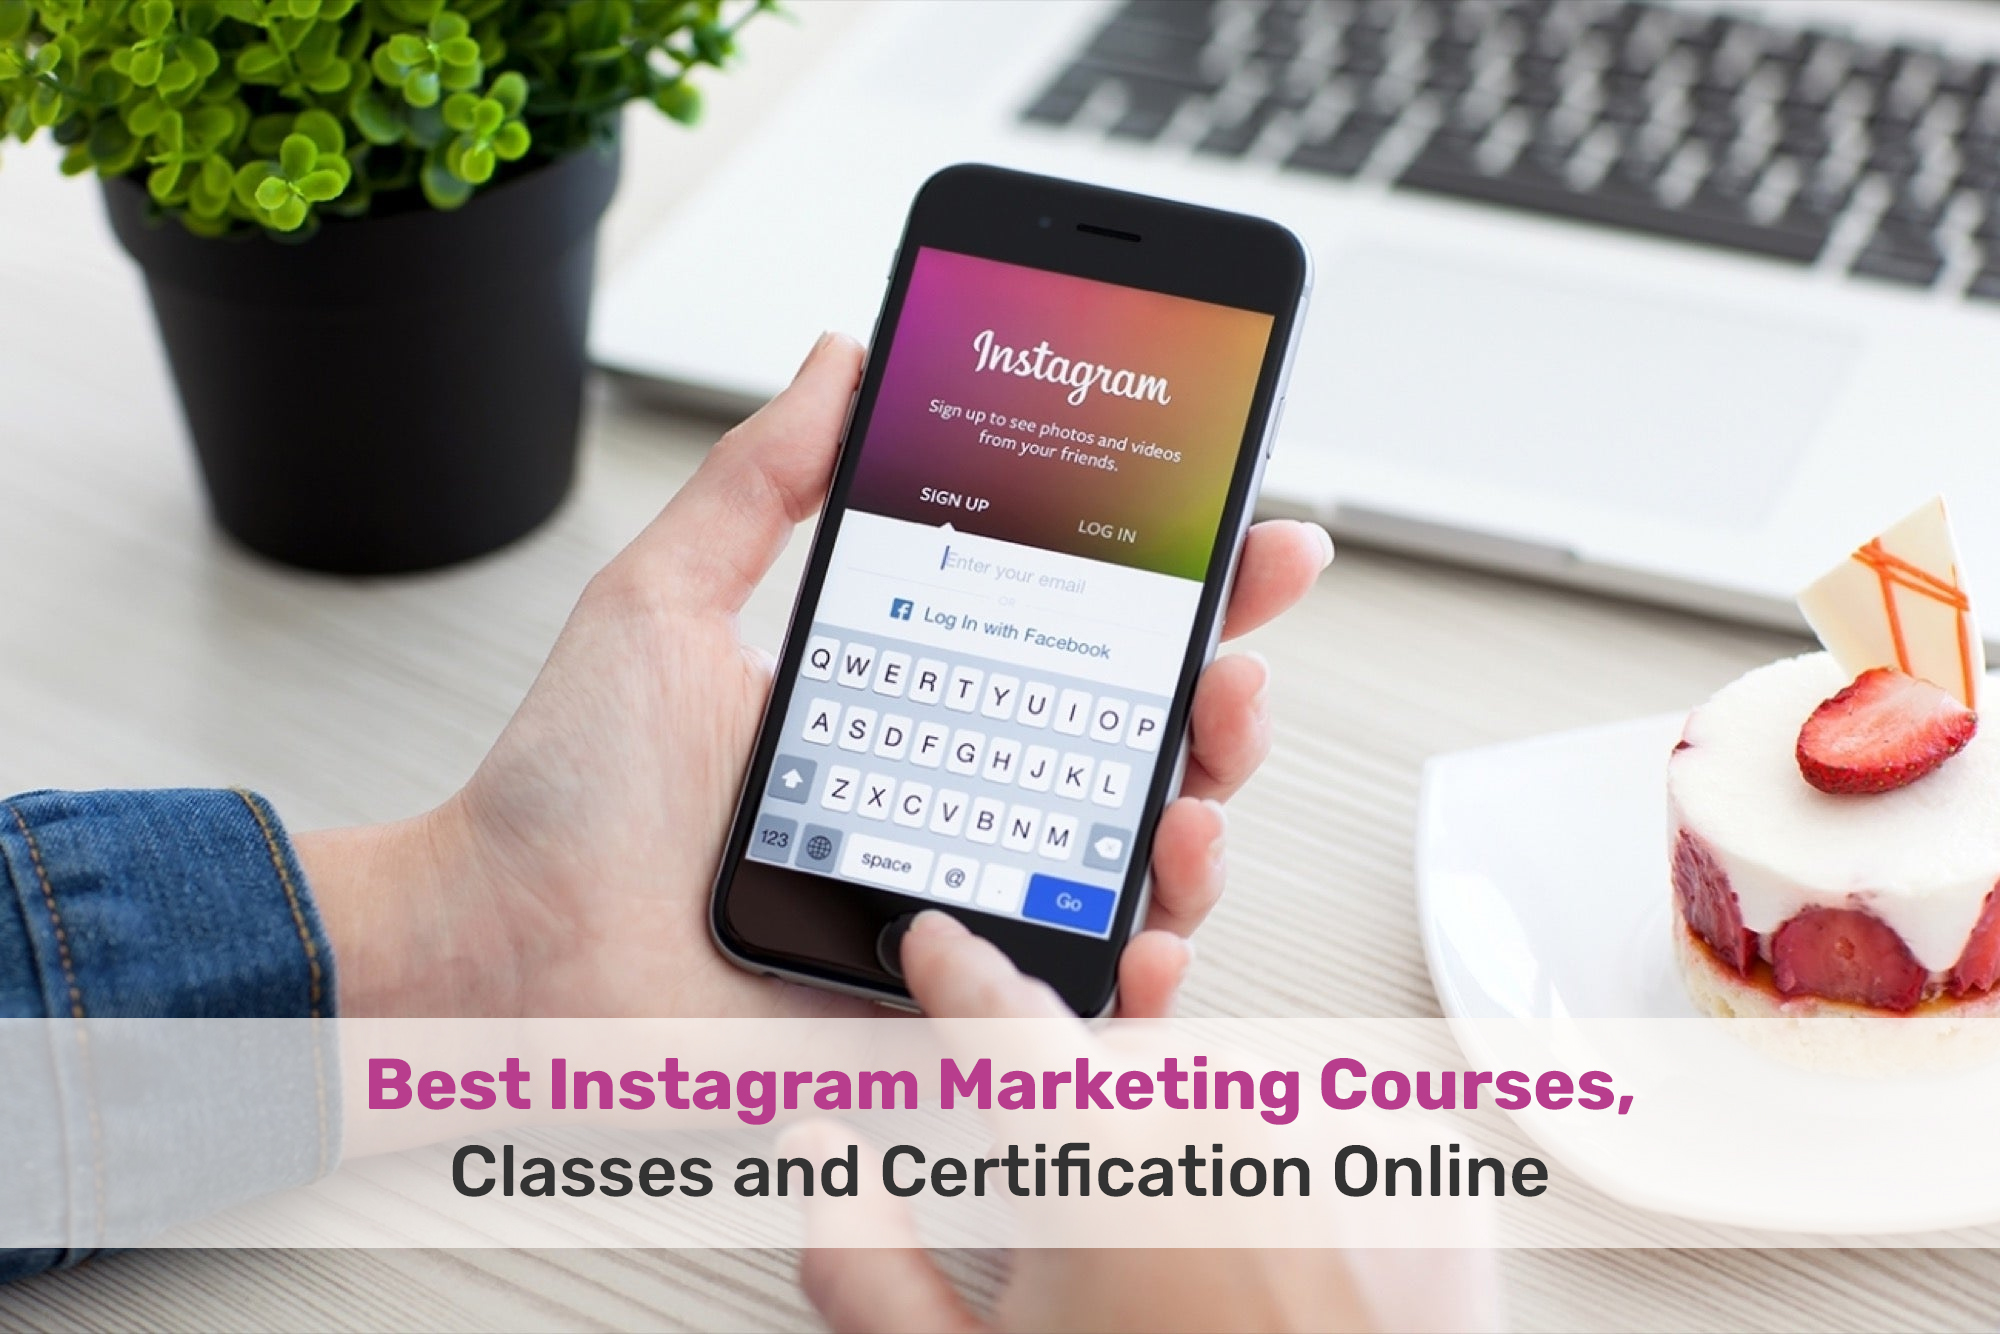 Best Instagram Marketing Courses, Classes and Certification Online